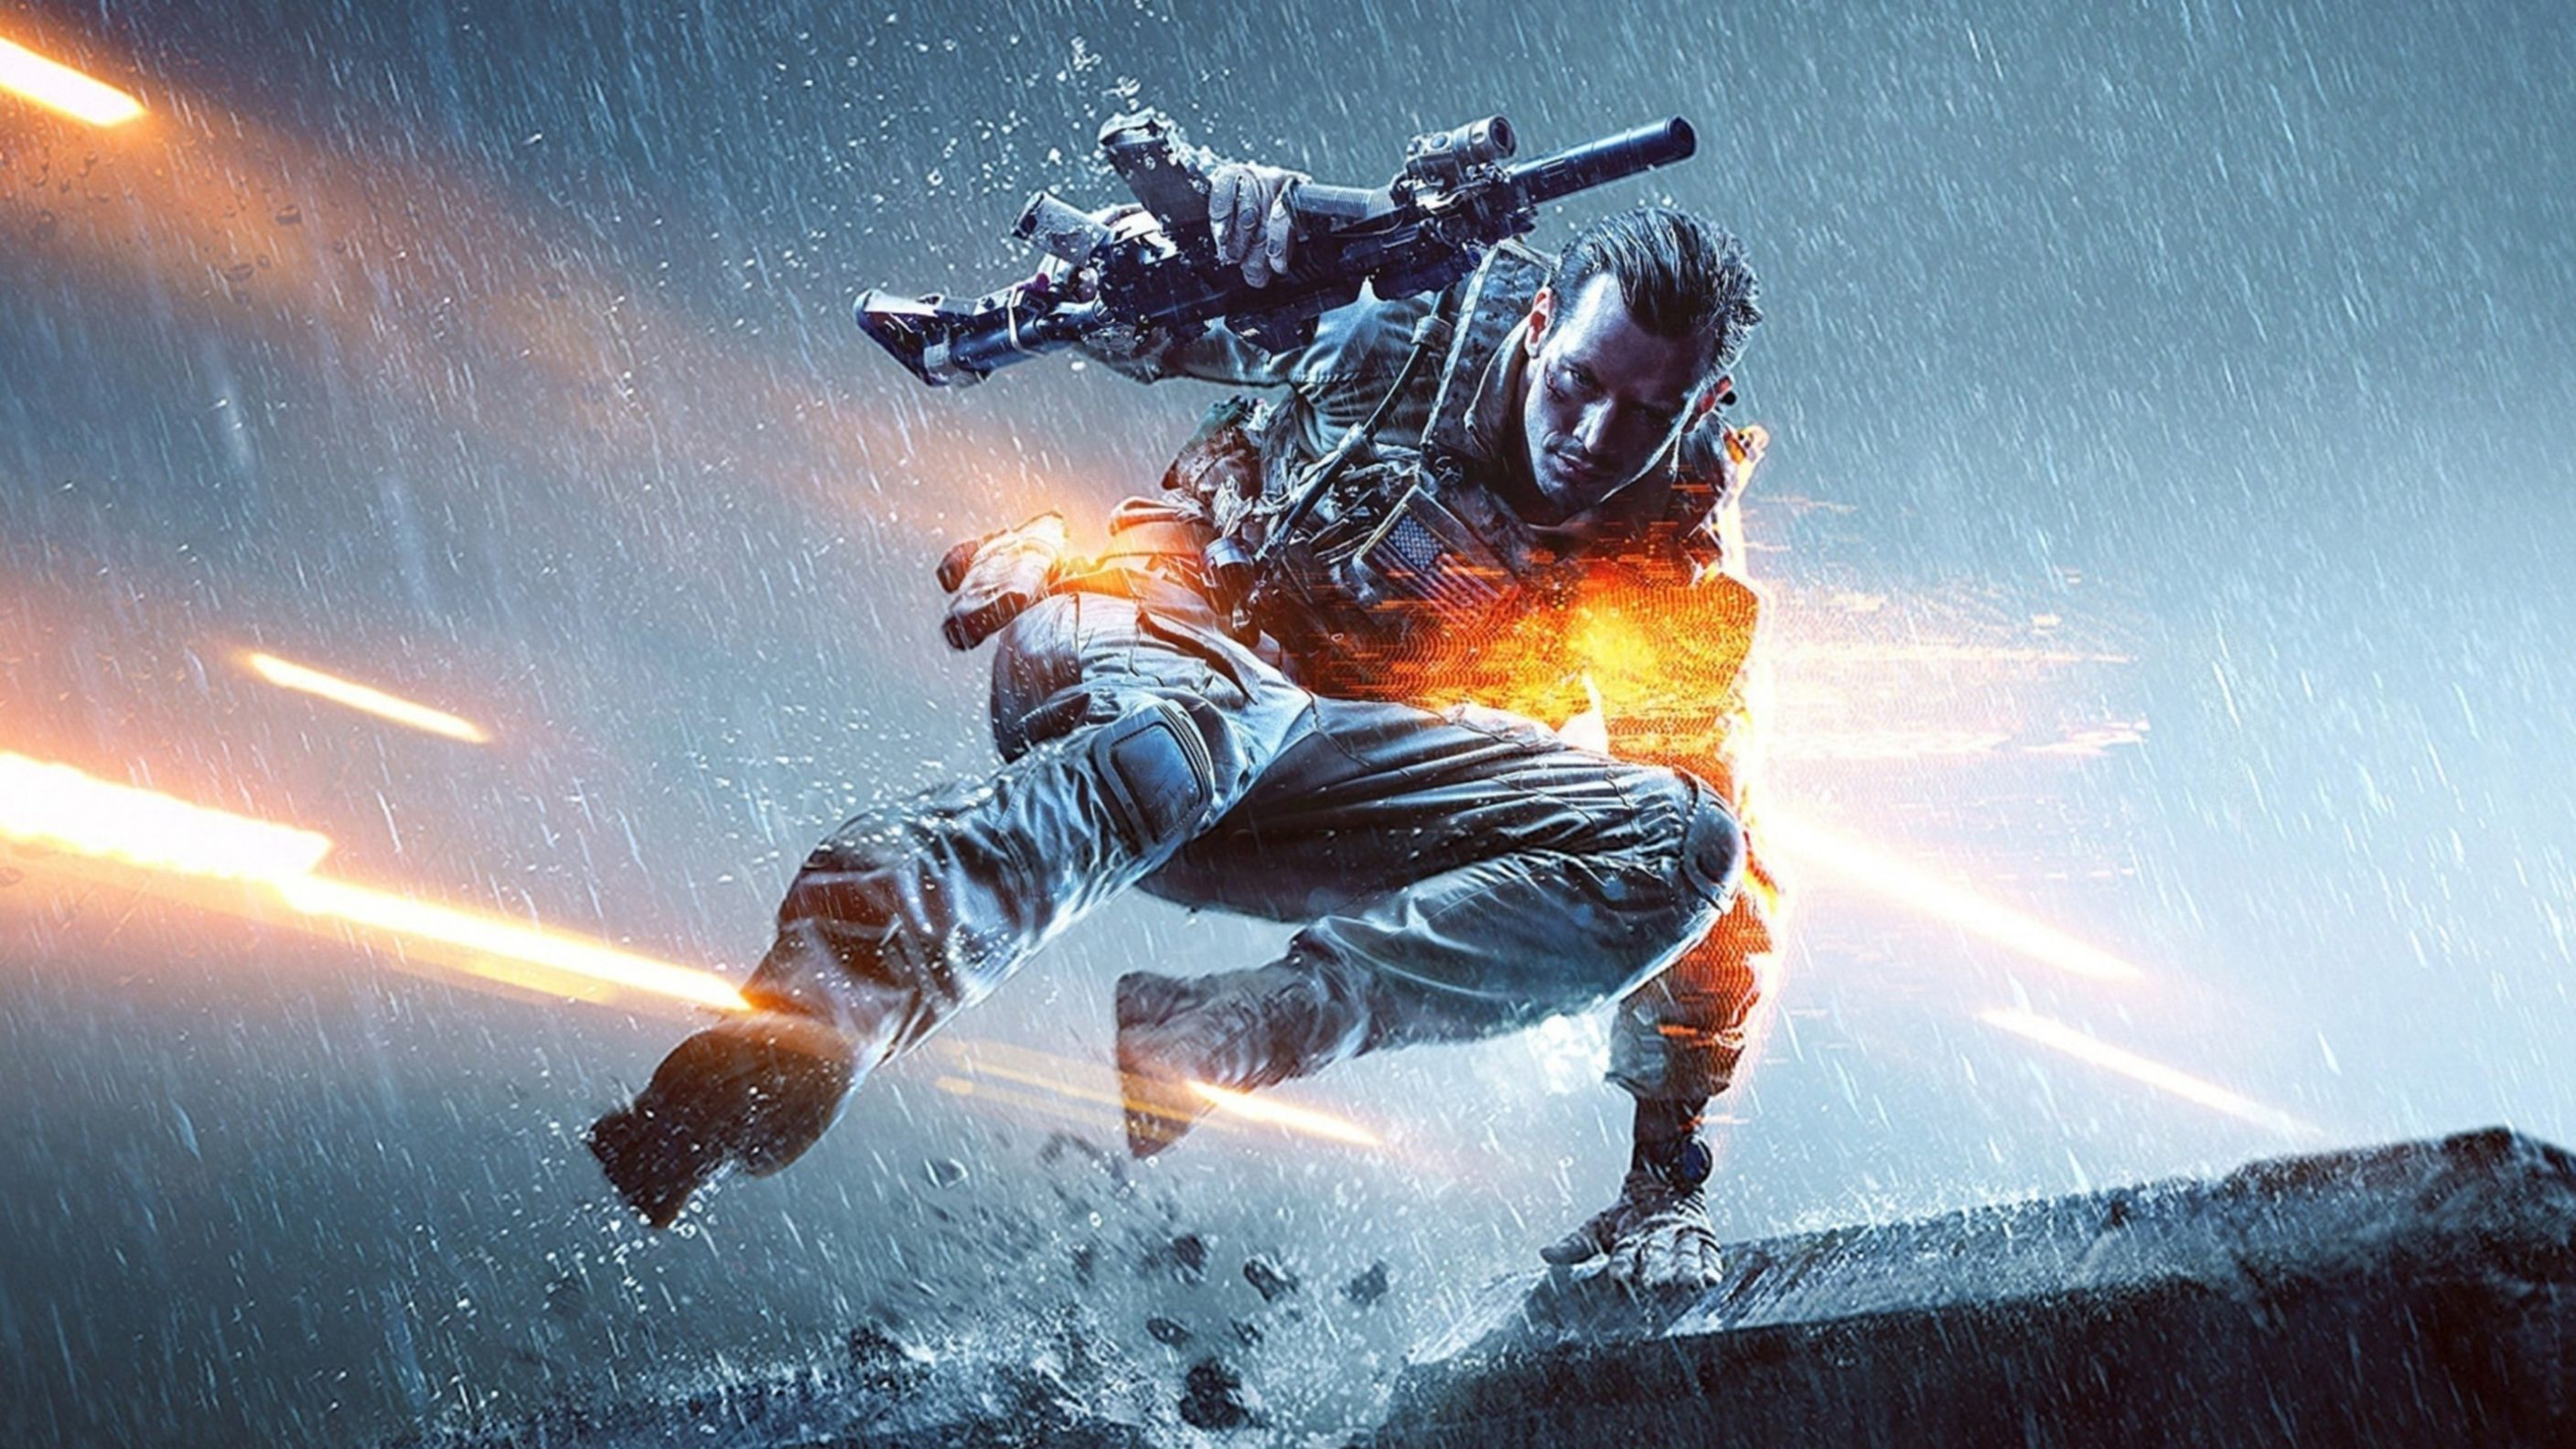 Download free HD Battlefield 4 2560×1440 Wallpaper, image